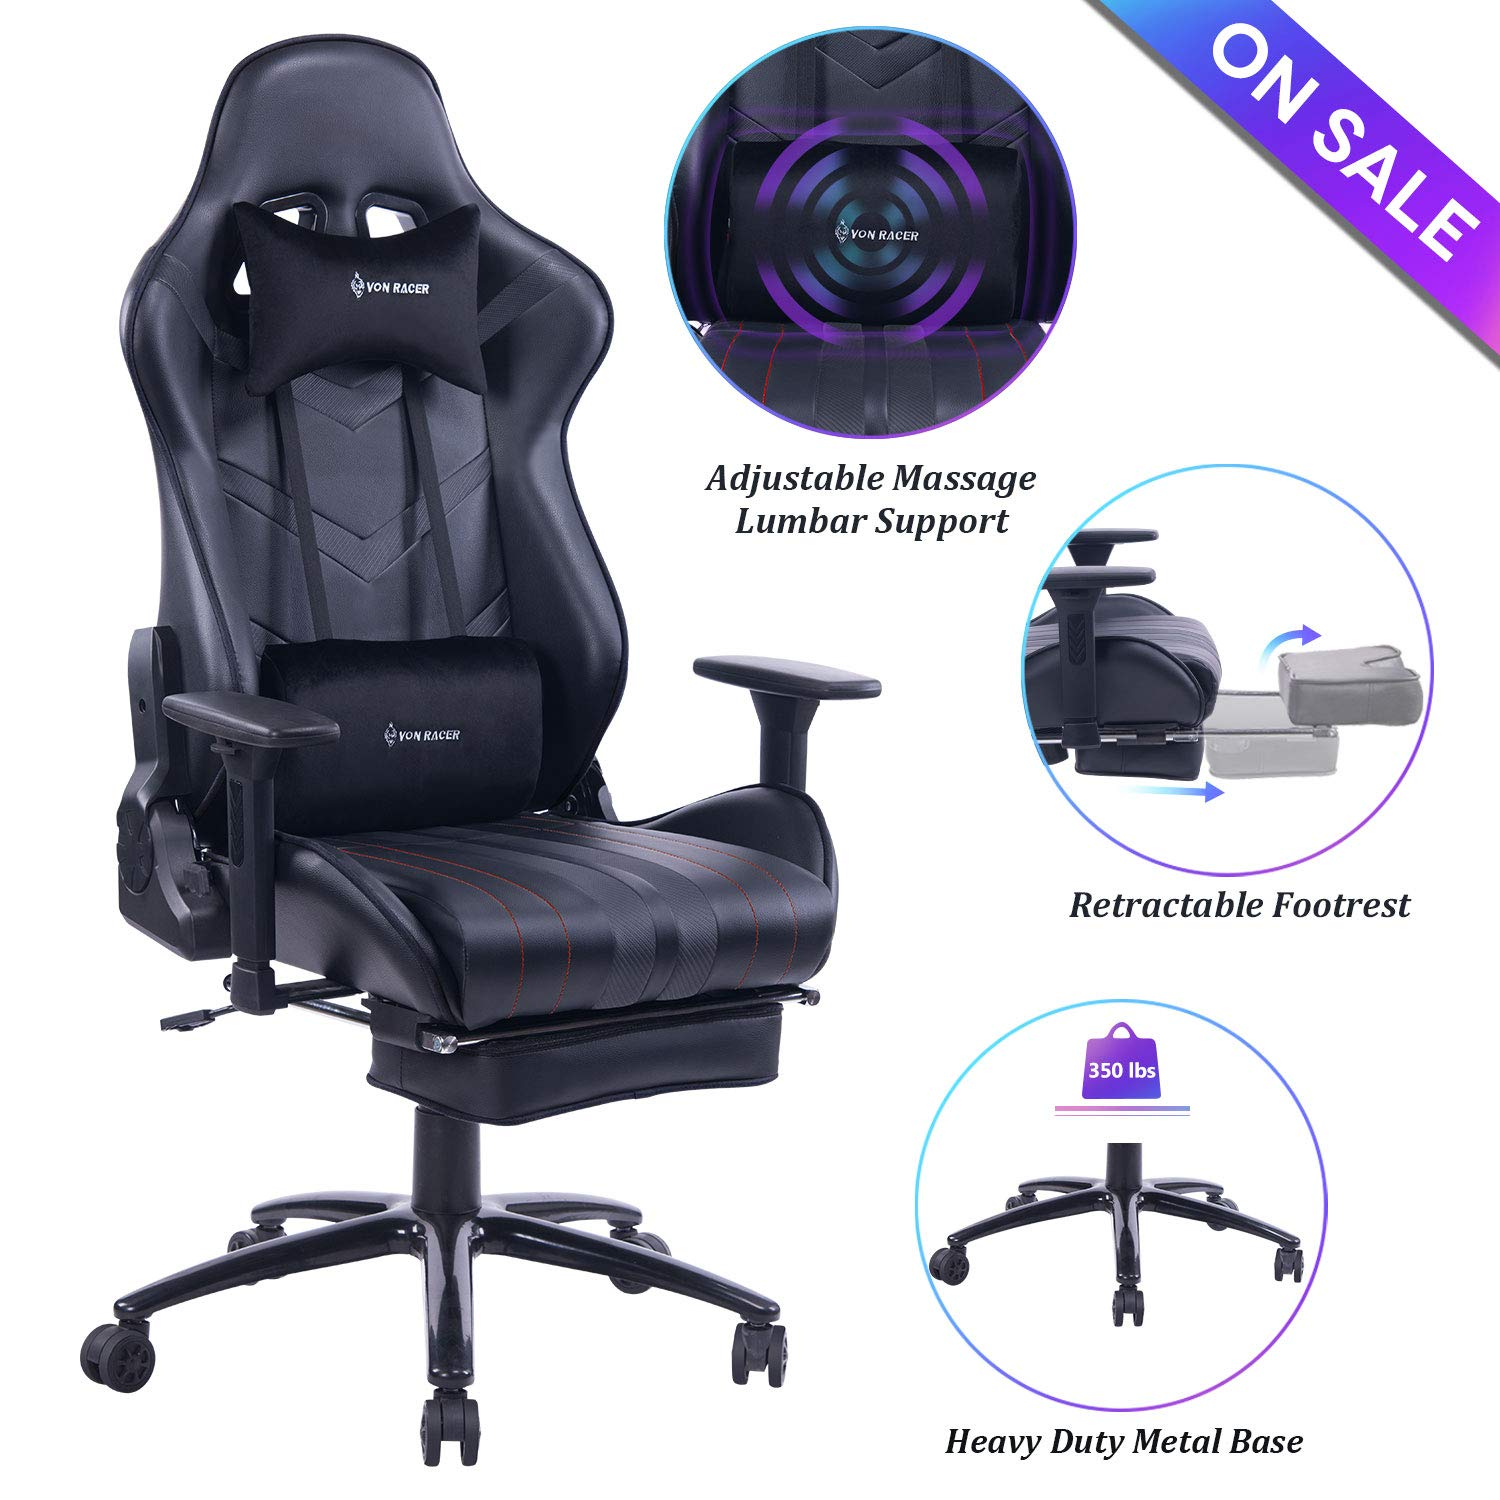 VON RACER Massage Gaming Chair Racing Office Chair - Adjustable Massage Lumbar Cushion, Retractable Footrest and Arms High Back Ergonomic Leather Computer Desk Chair (Black) by VON RACER